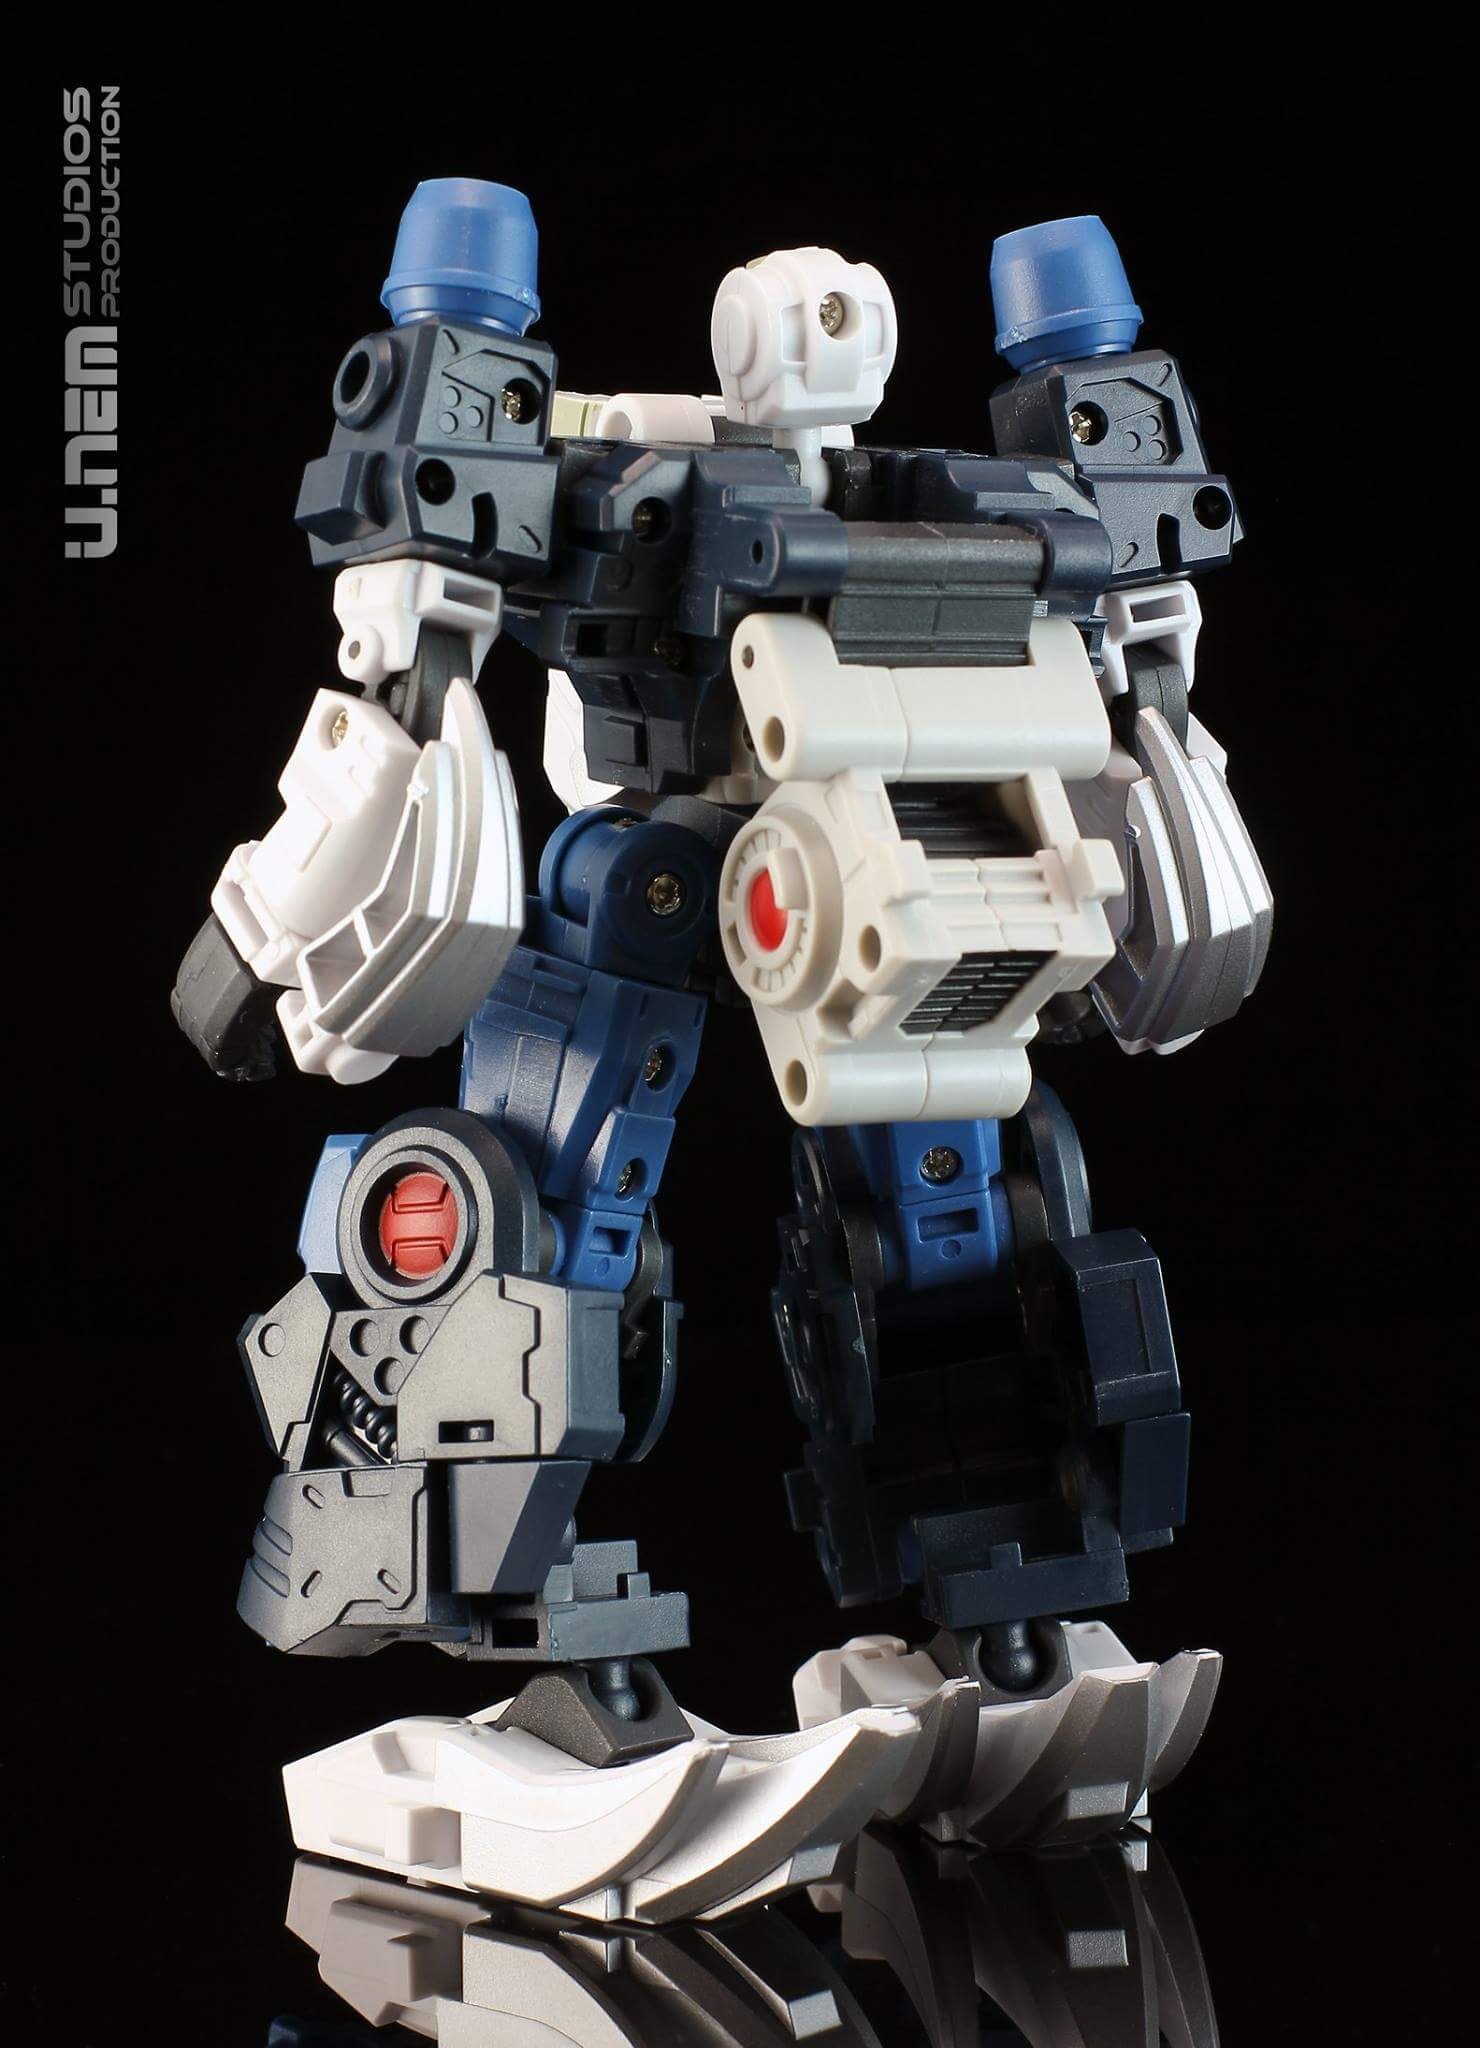 [FansProject] Produit Tiers - Jouet Saurus Ryu-oh aka Dinoking (Victory) | Monstructor (USA) - Page 3 9HPbi4Jx